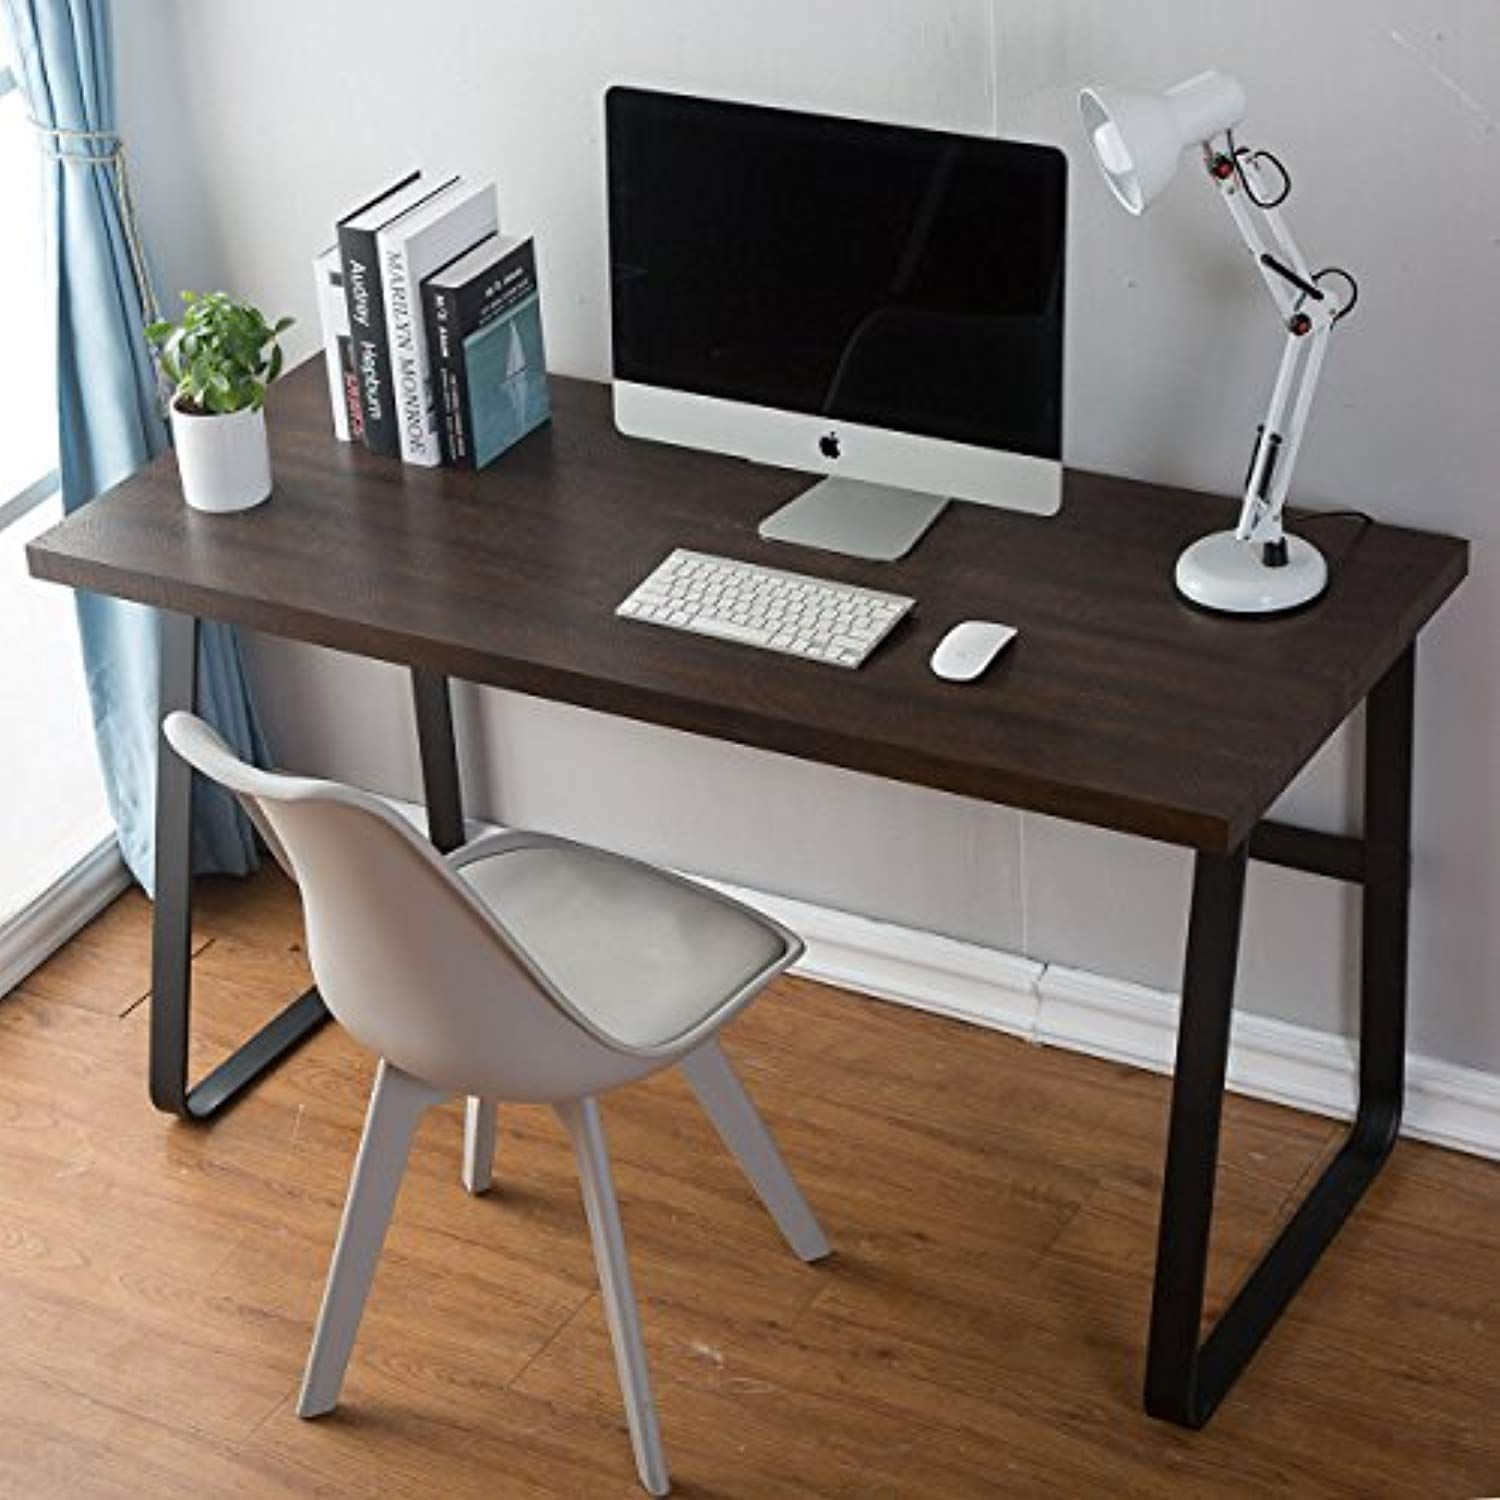 Decomate vintage computer desk wood and metal writing desk pc